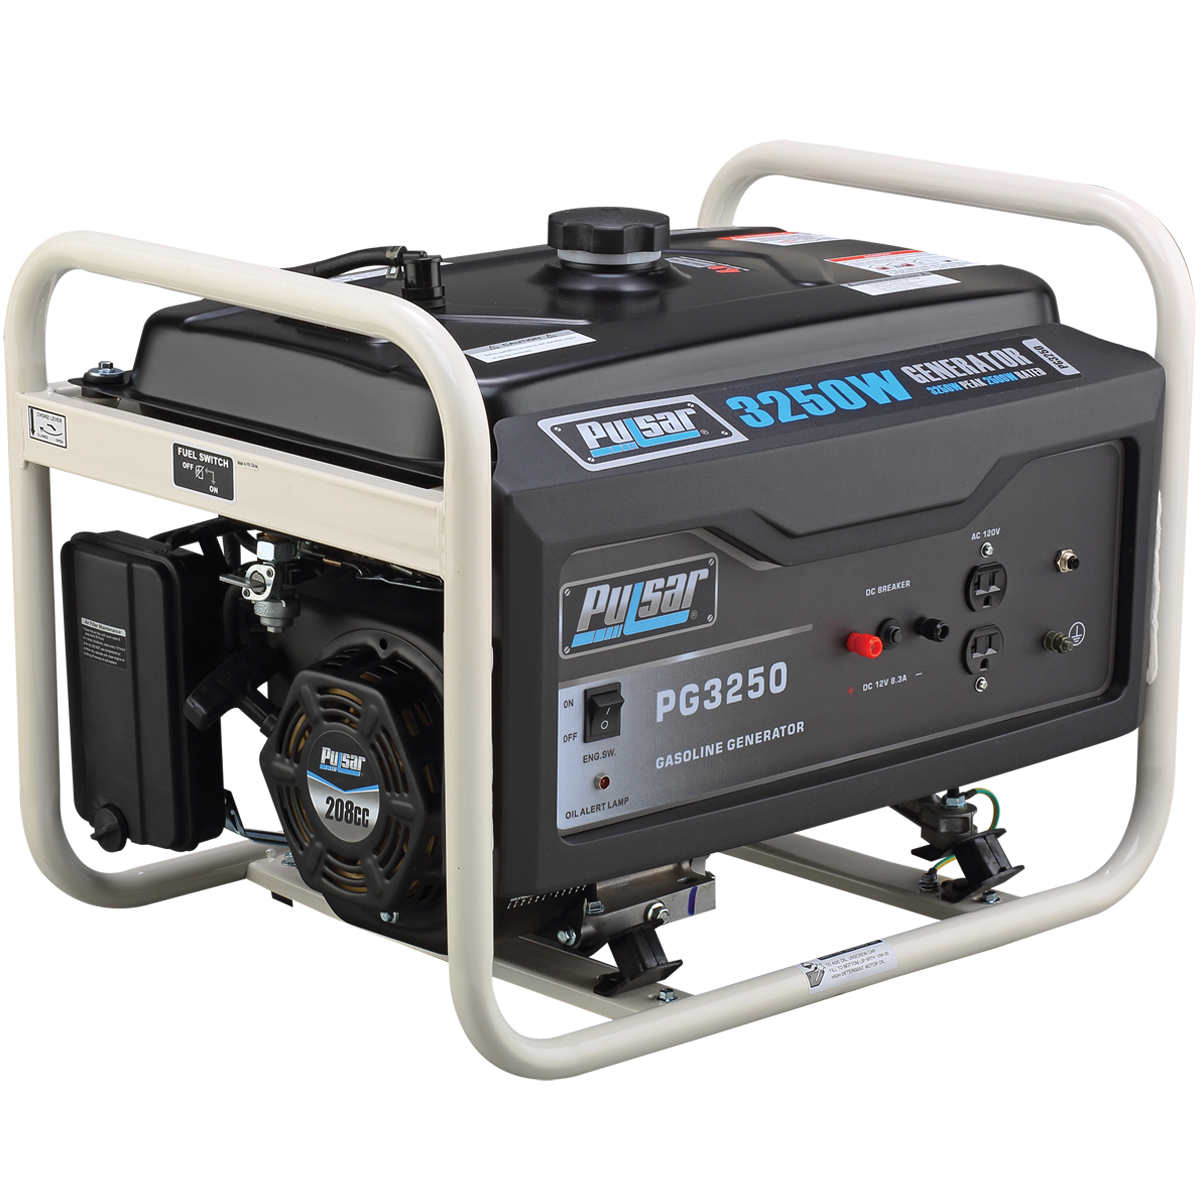 Pulsar PG3250 3250-Watt Gasoline Generator Rated 2500-Watt